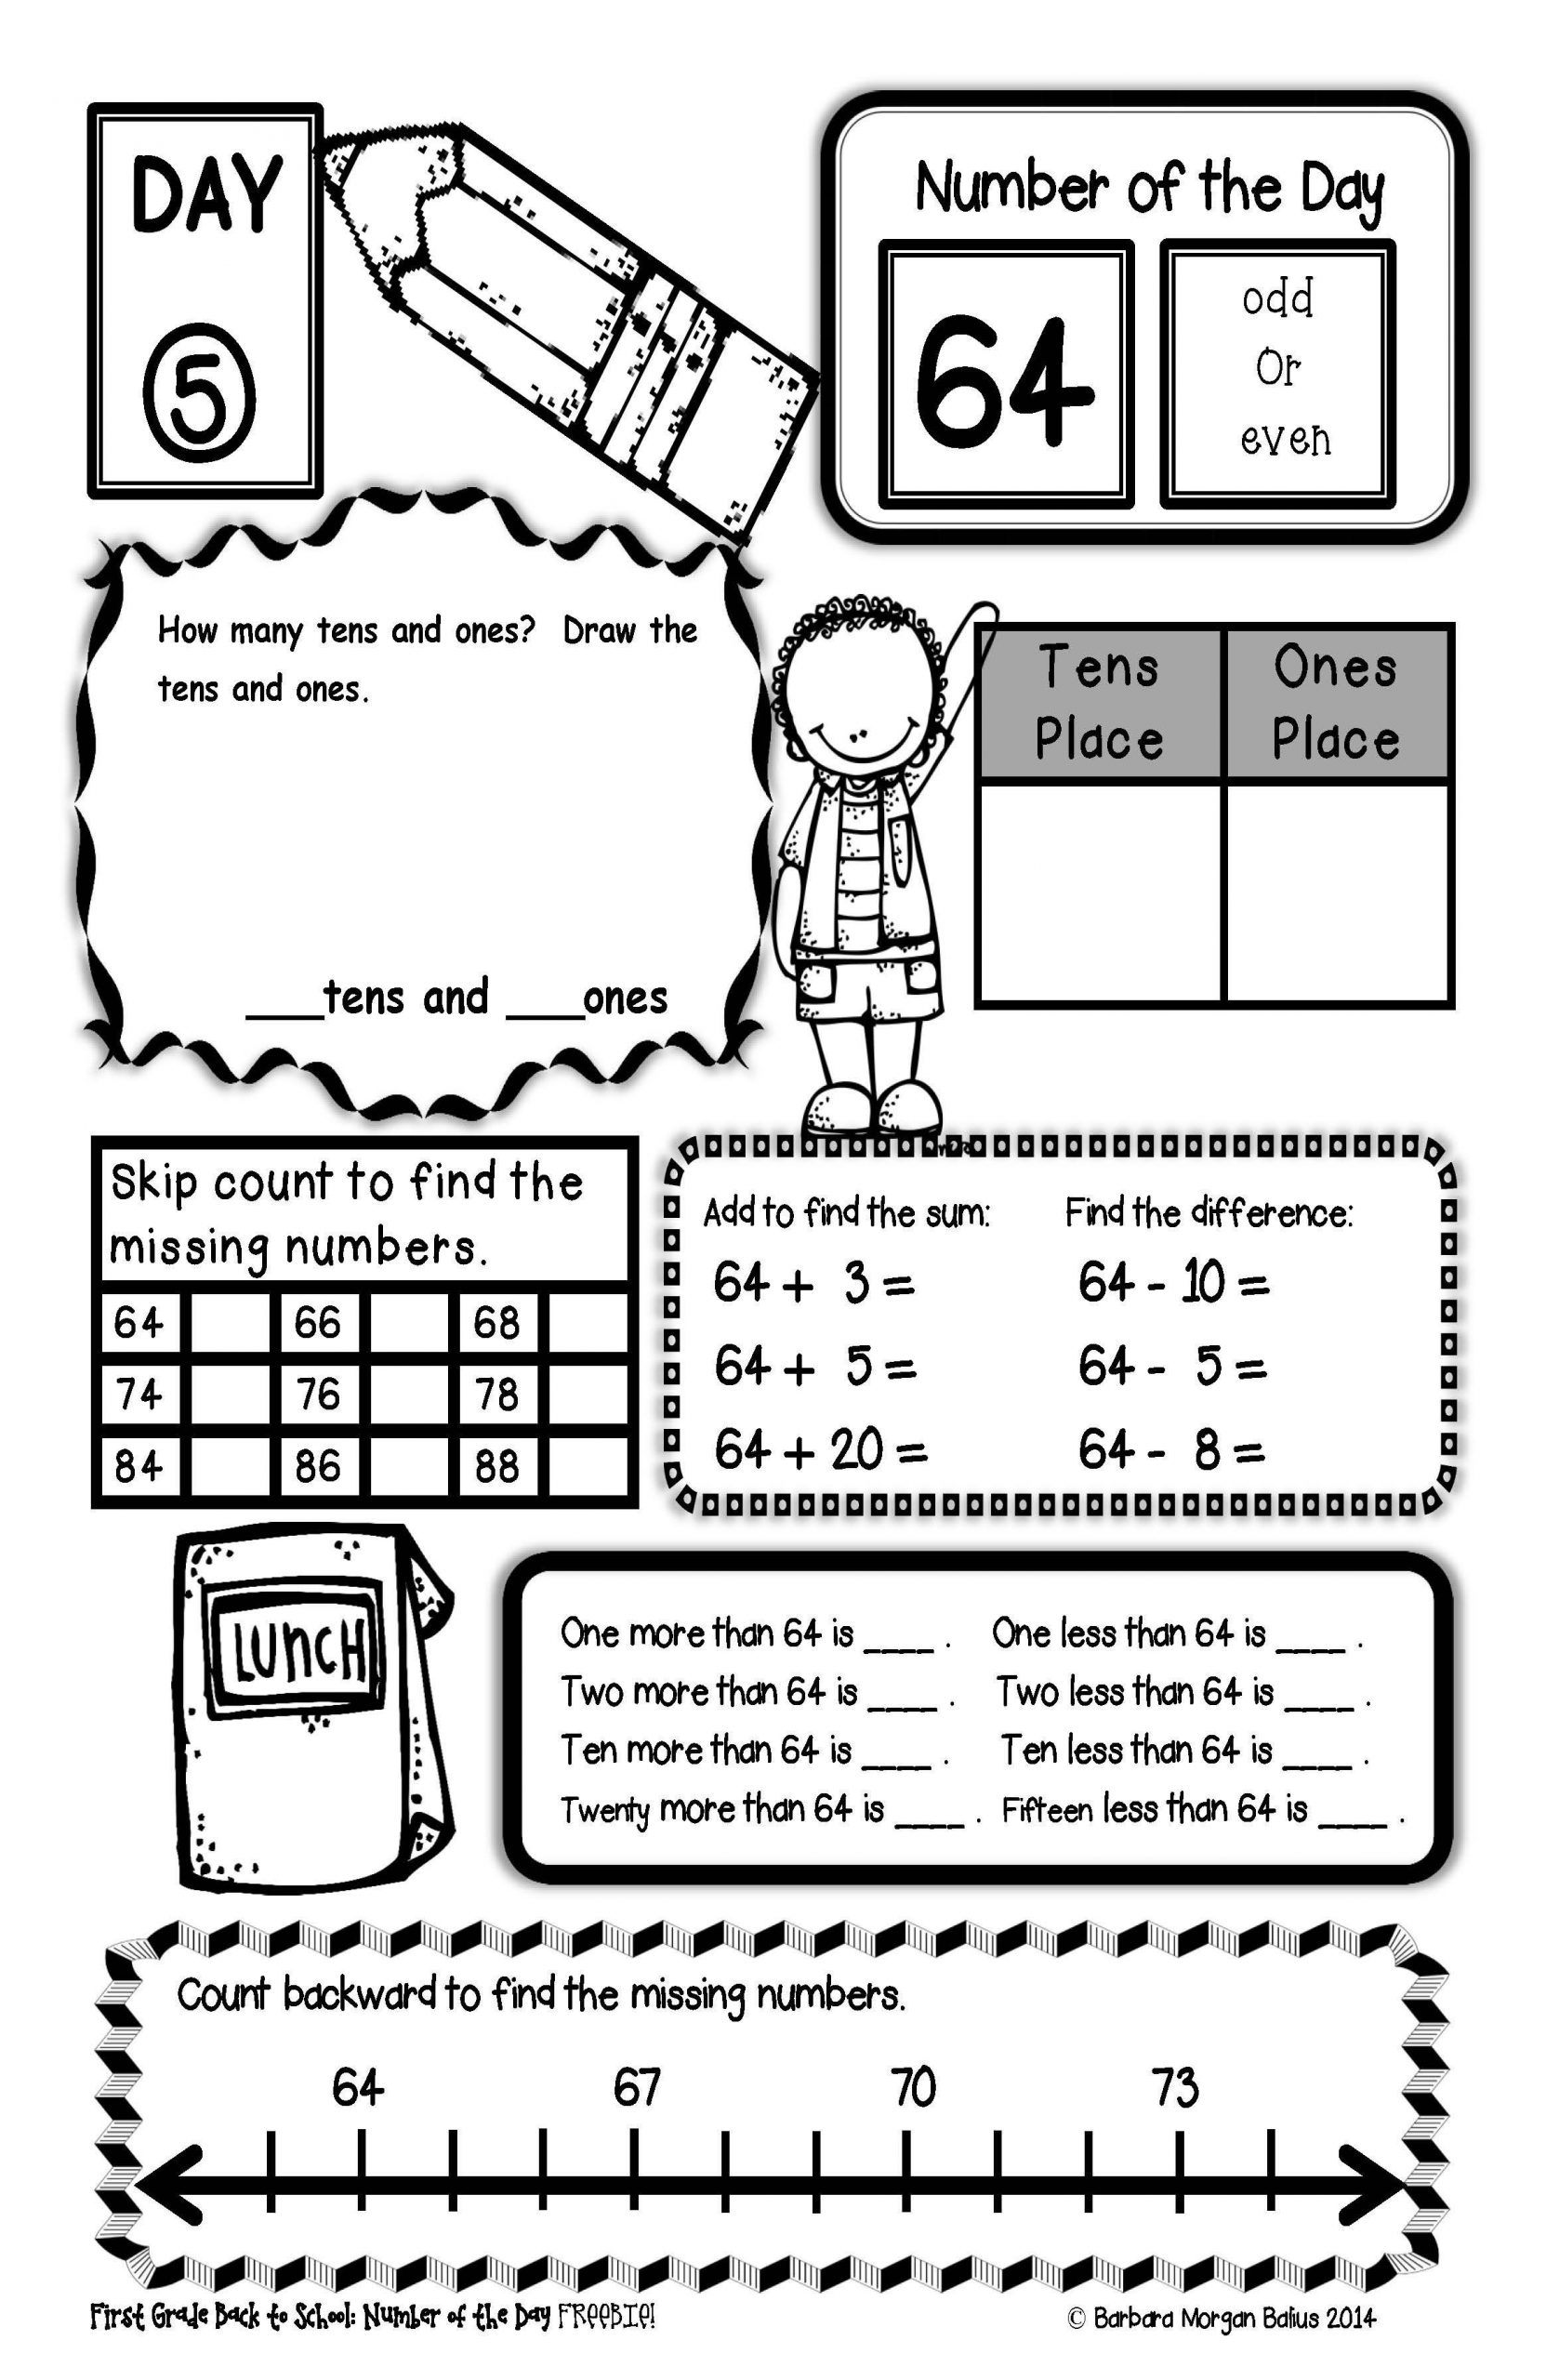 hight resolution of Camping Theme Worksheets For 2nd Grade   Printable Worksheets and  Activities for Teachers